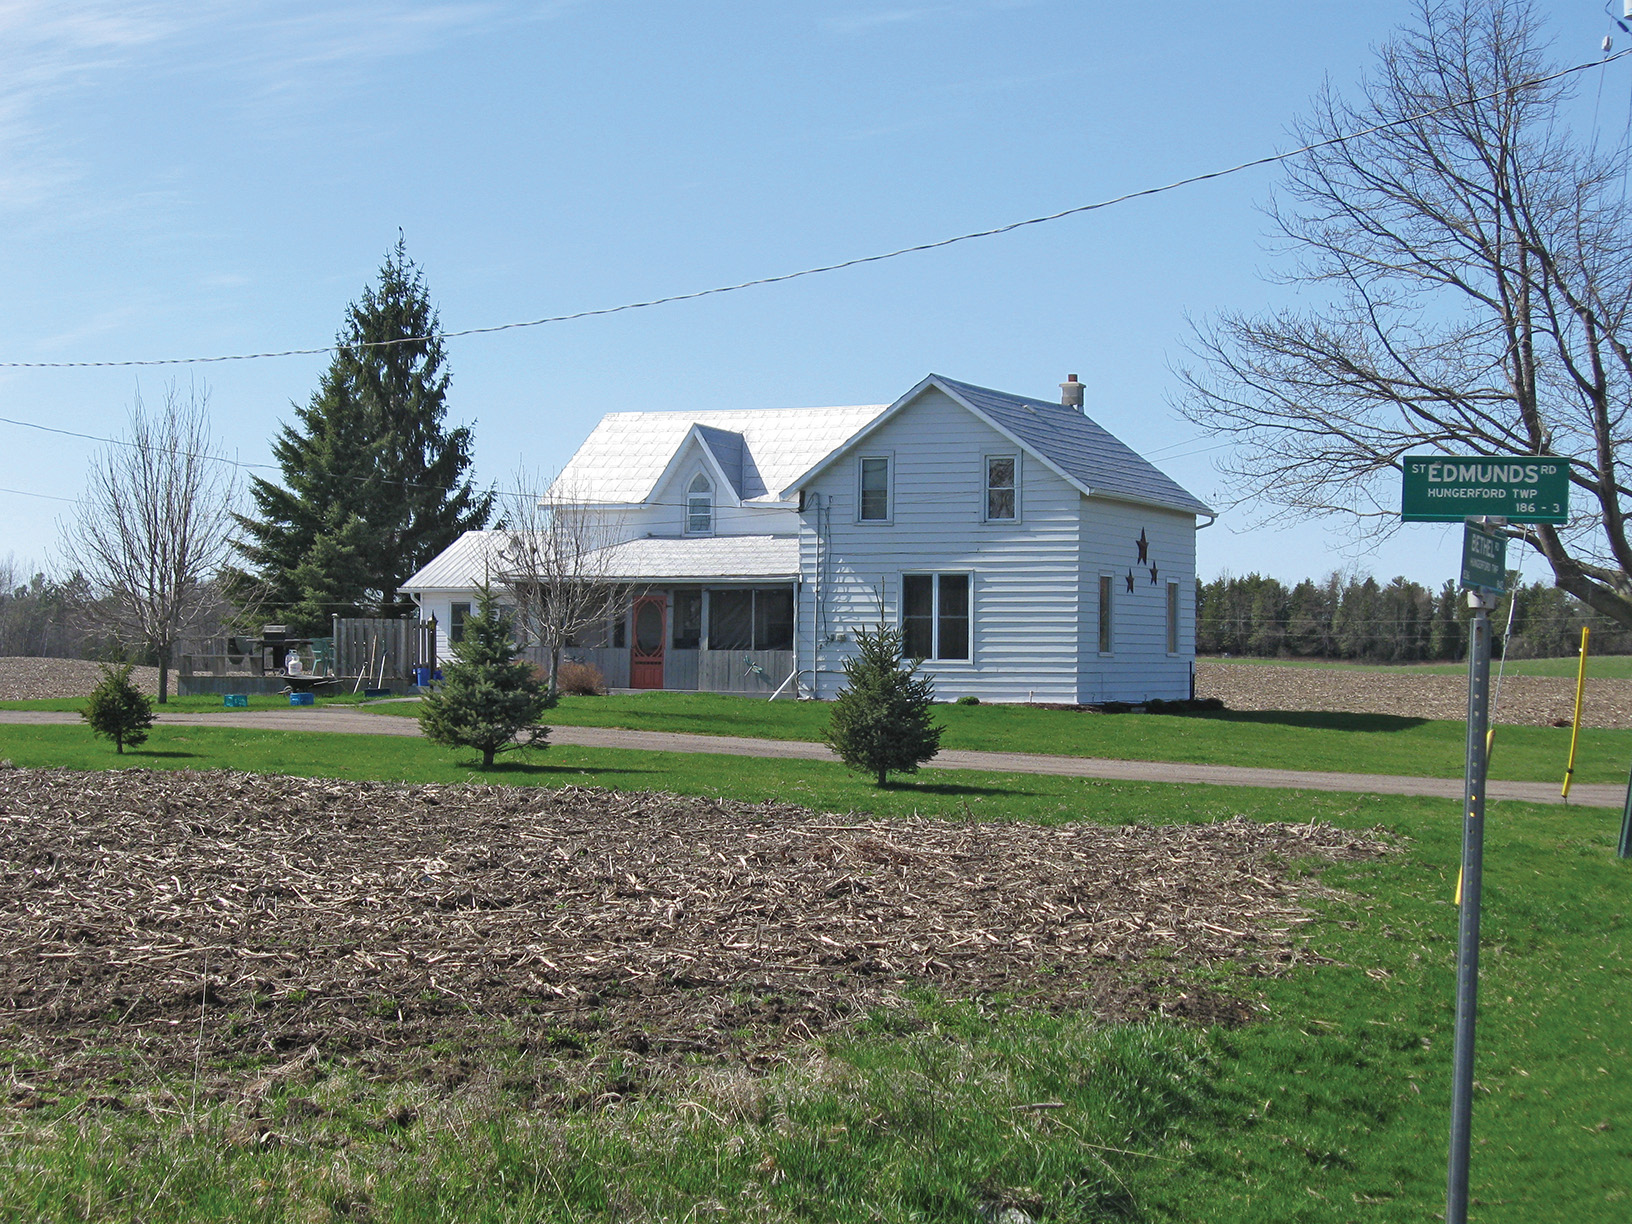 Although a bachelor farmer, Willie Mulrooney managed to create a family community on the shore of his farm (Farmhouse pictured) on Bethel Road.